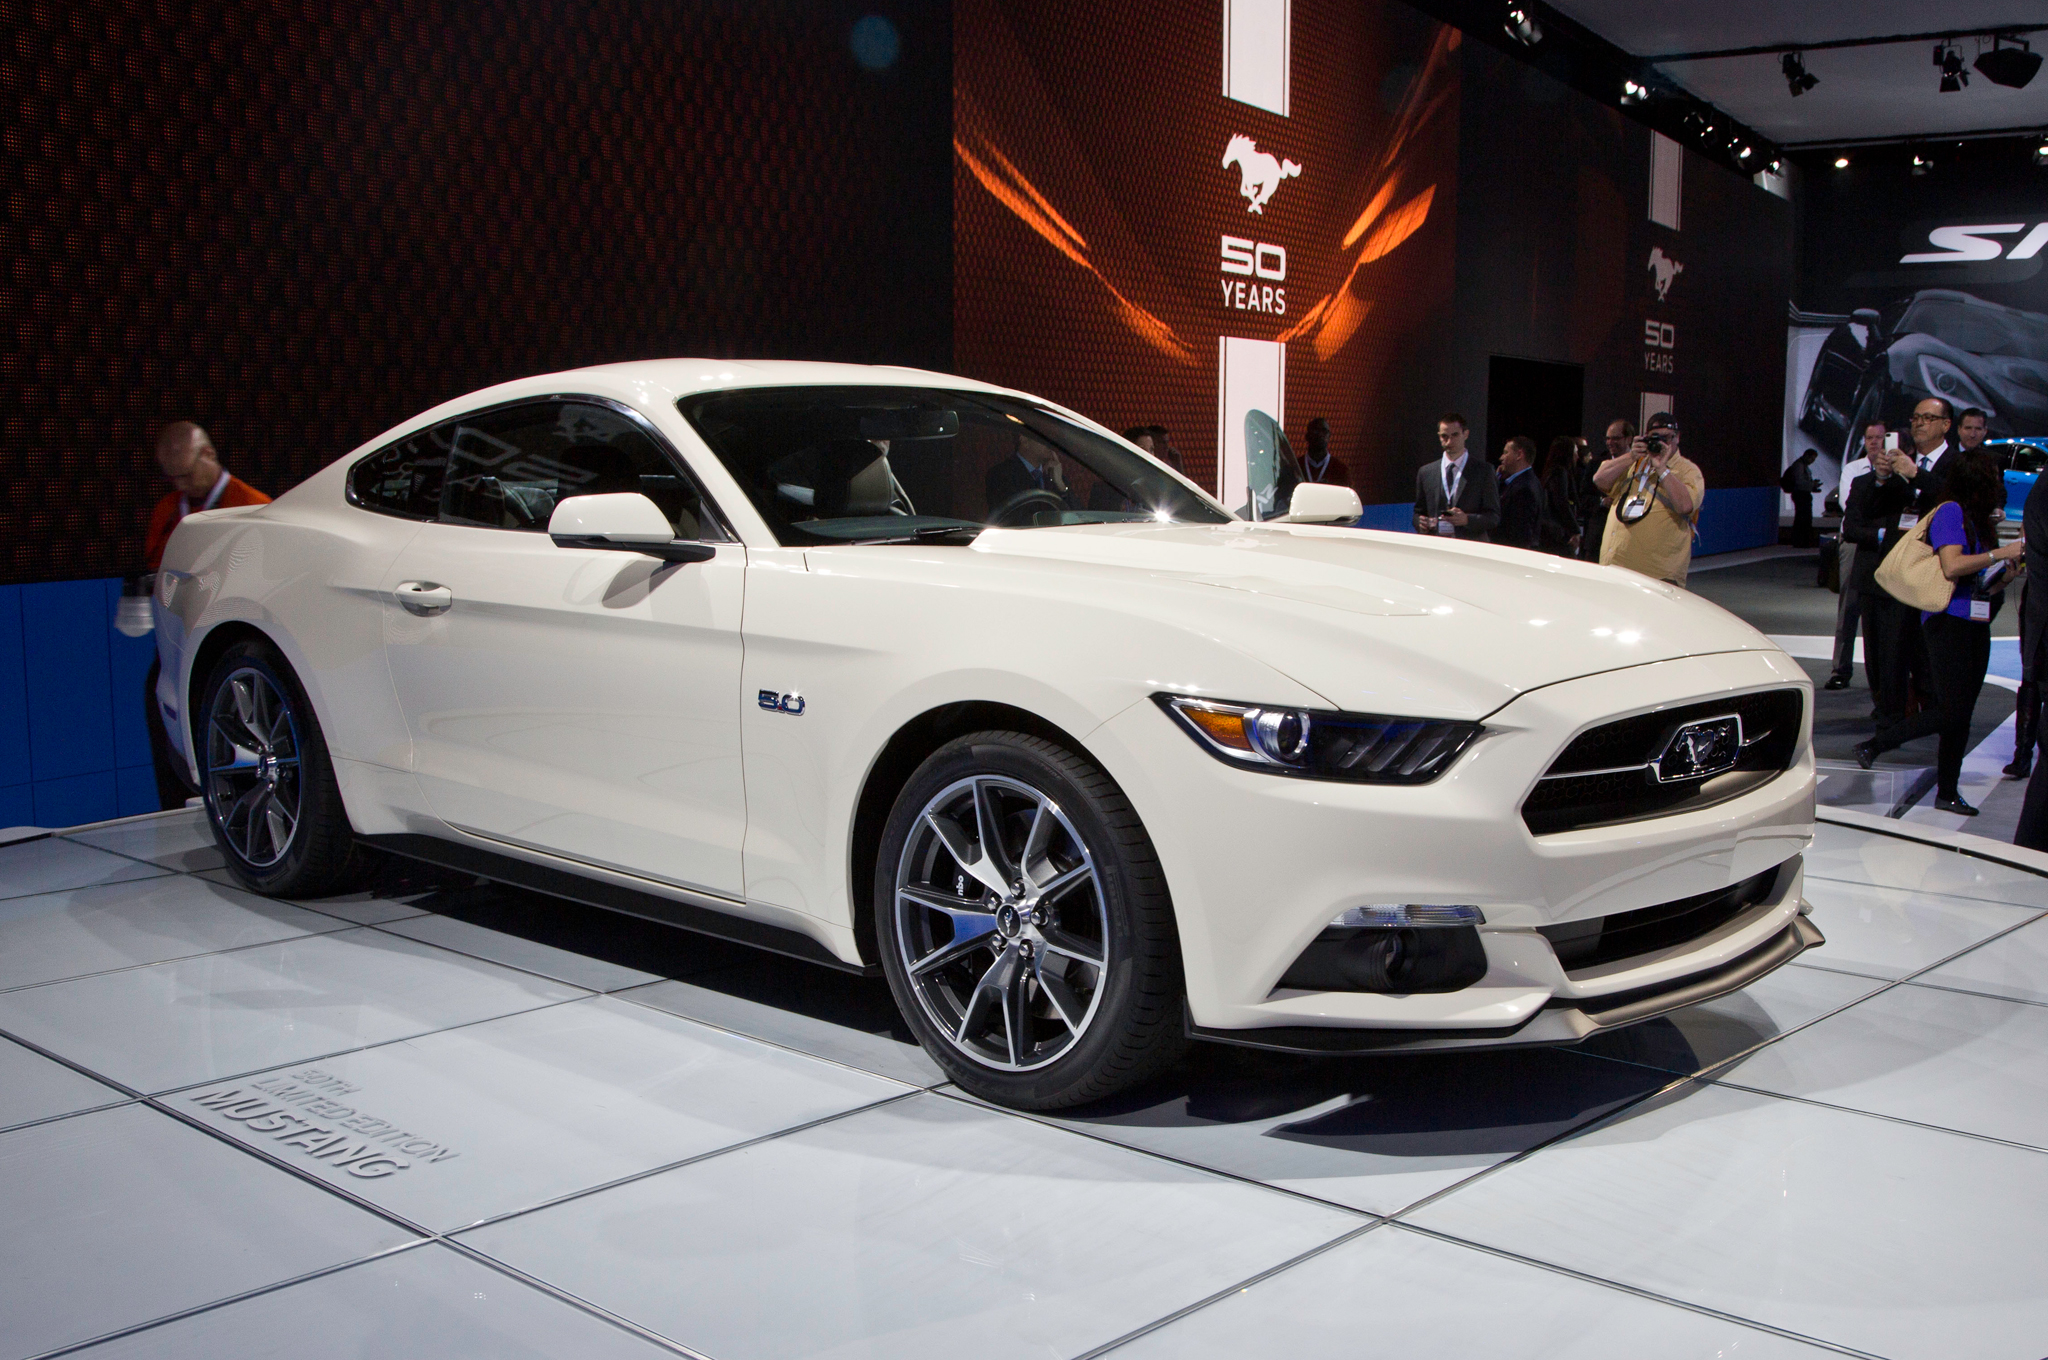 Louvers and Chrome for 2015 Ford Mustang 50th Anniversary Edition